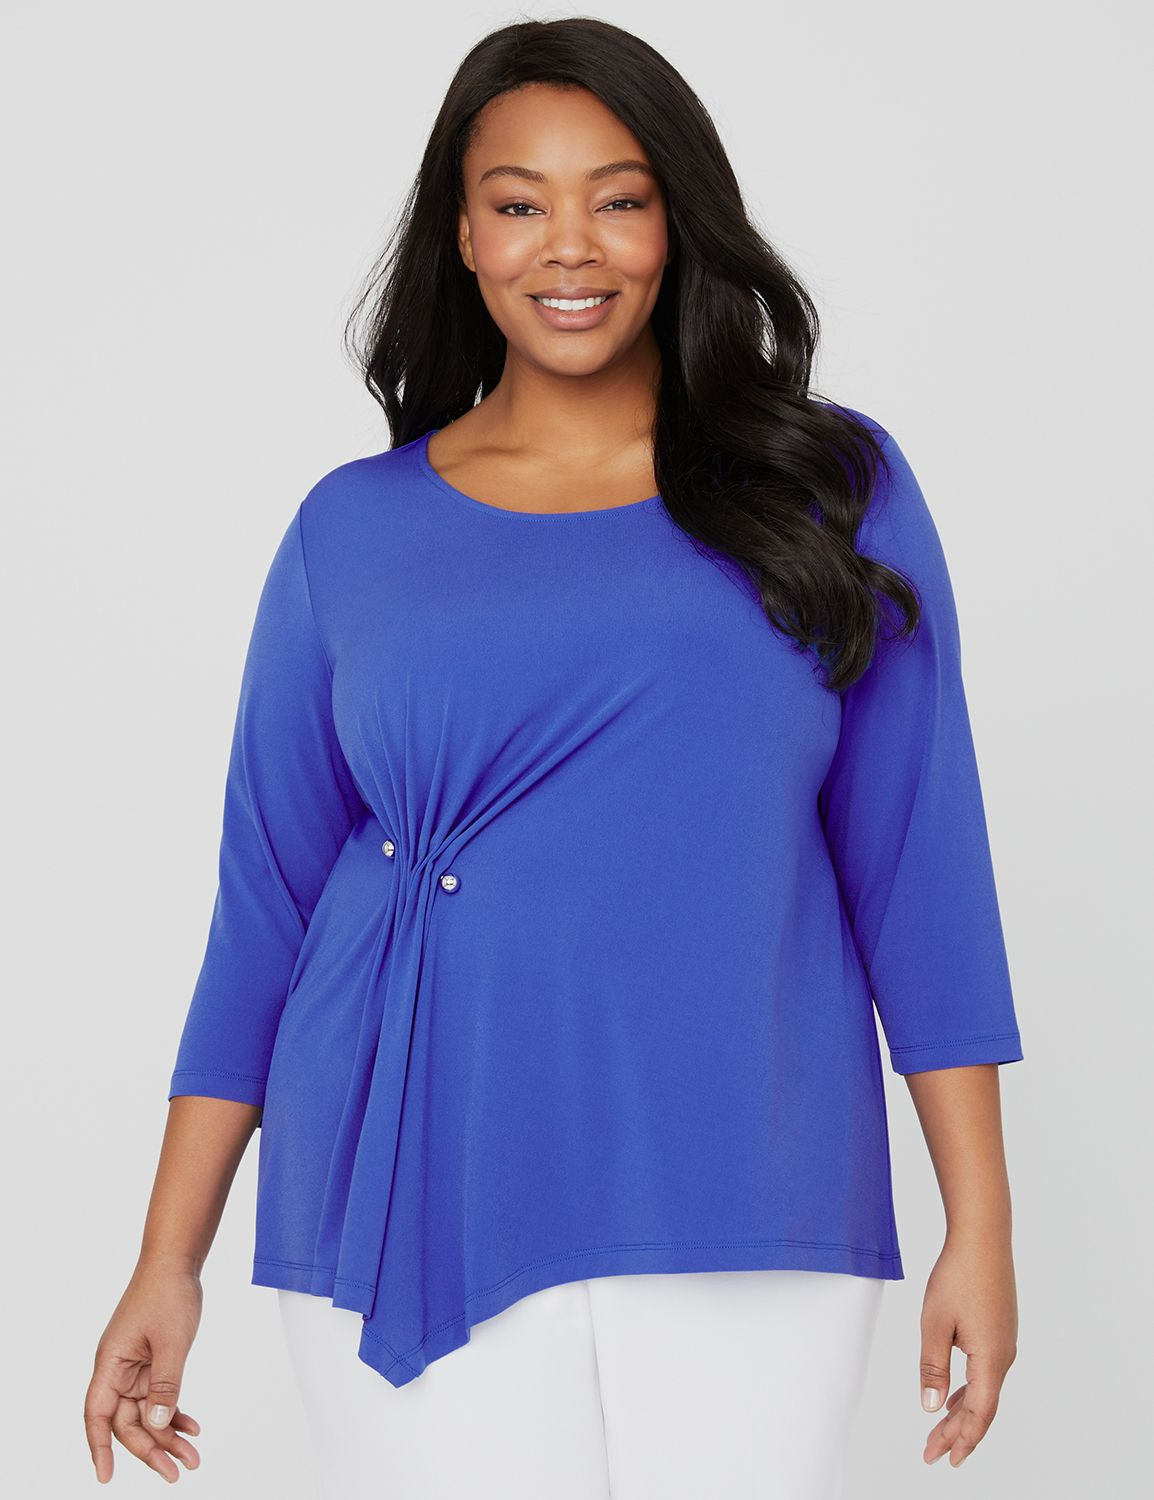 Black Label Blue Diamond Top 1090803 Asymmetrical Knit Top with MP-300102567